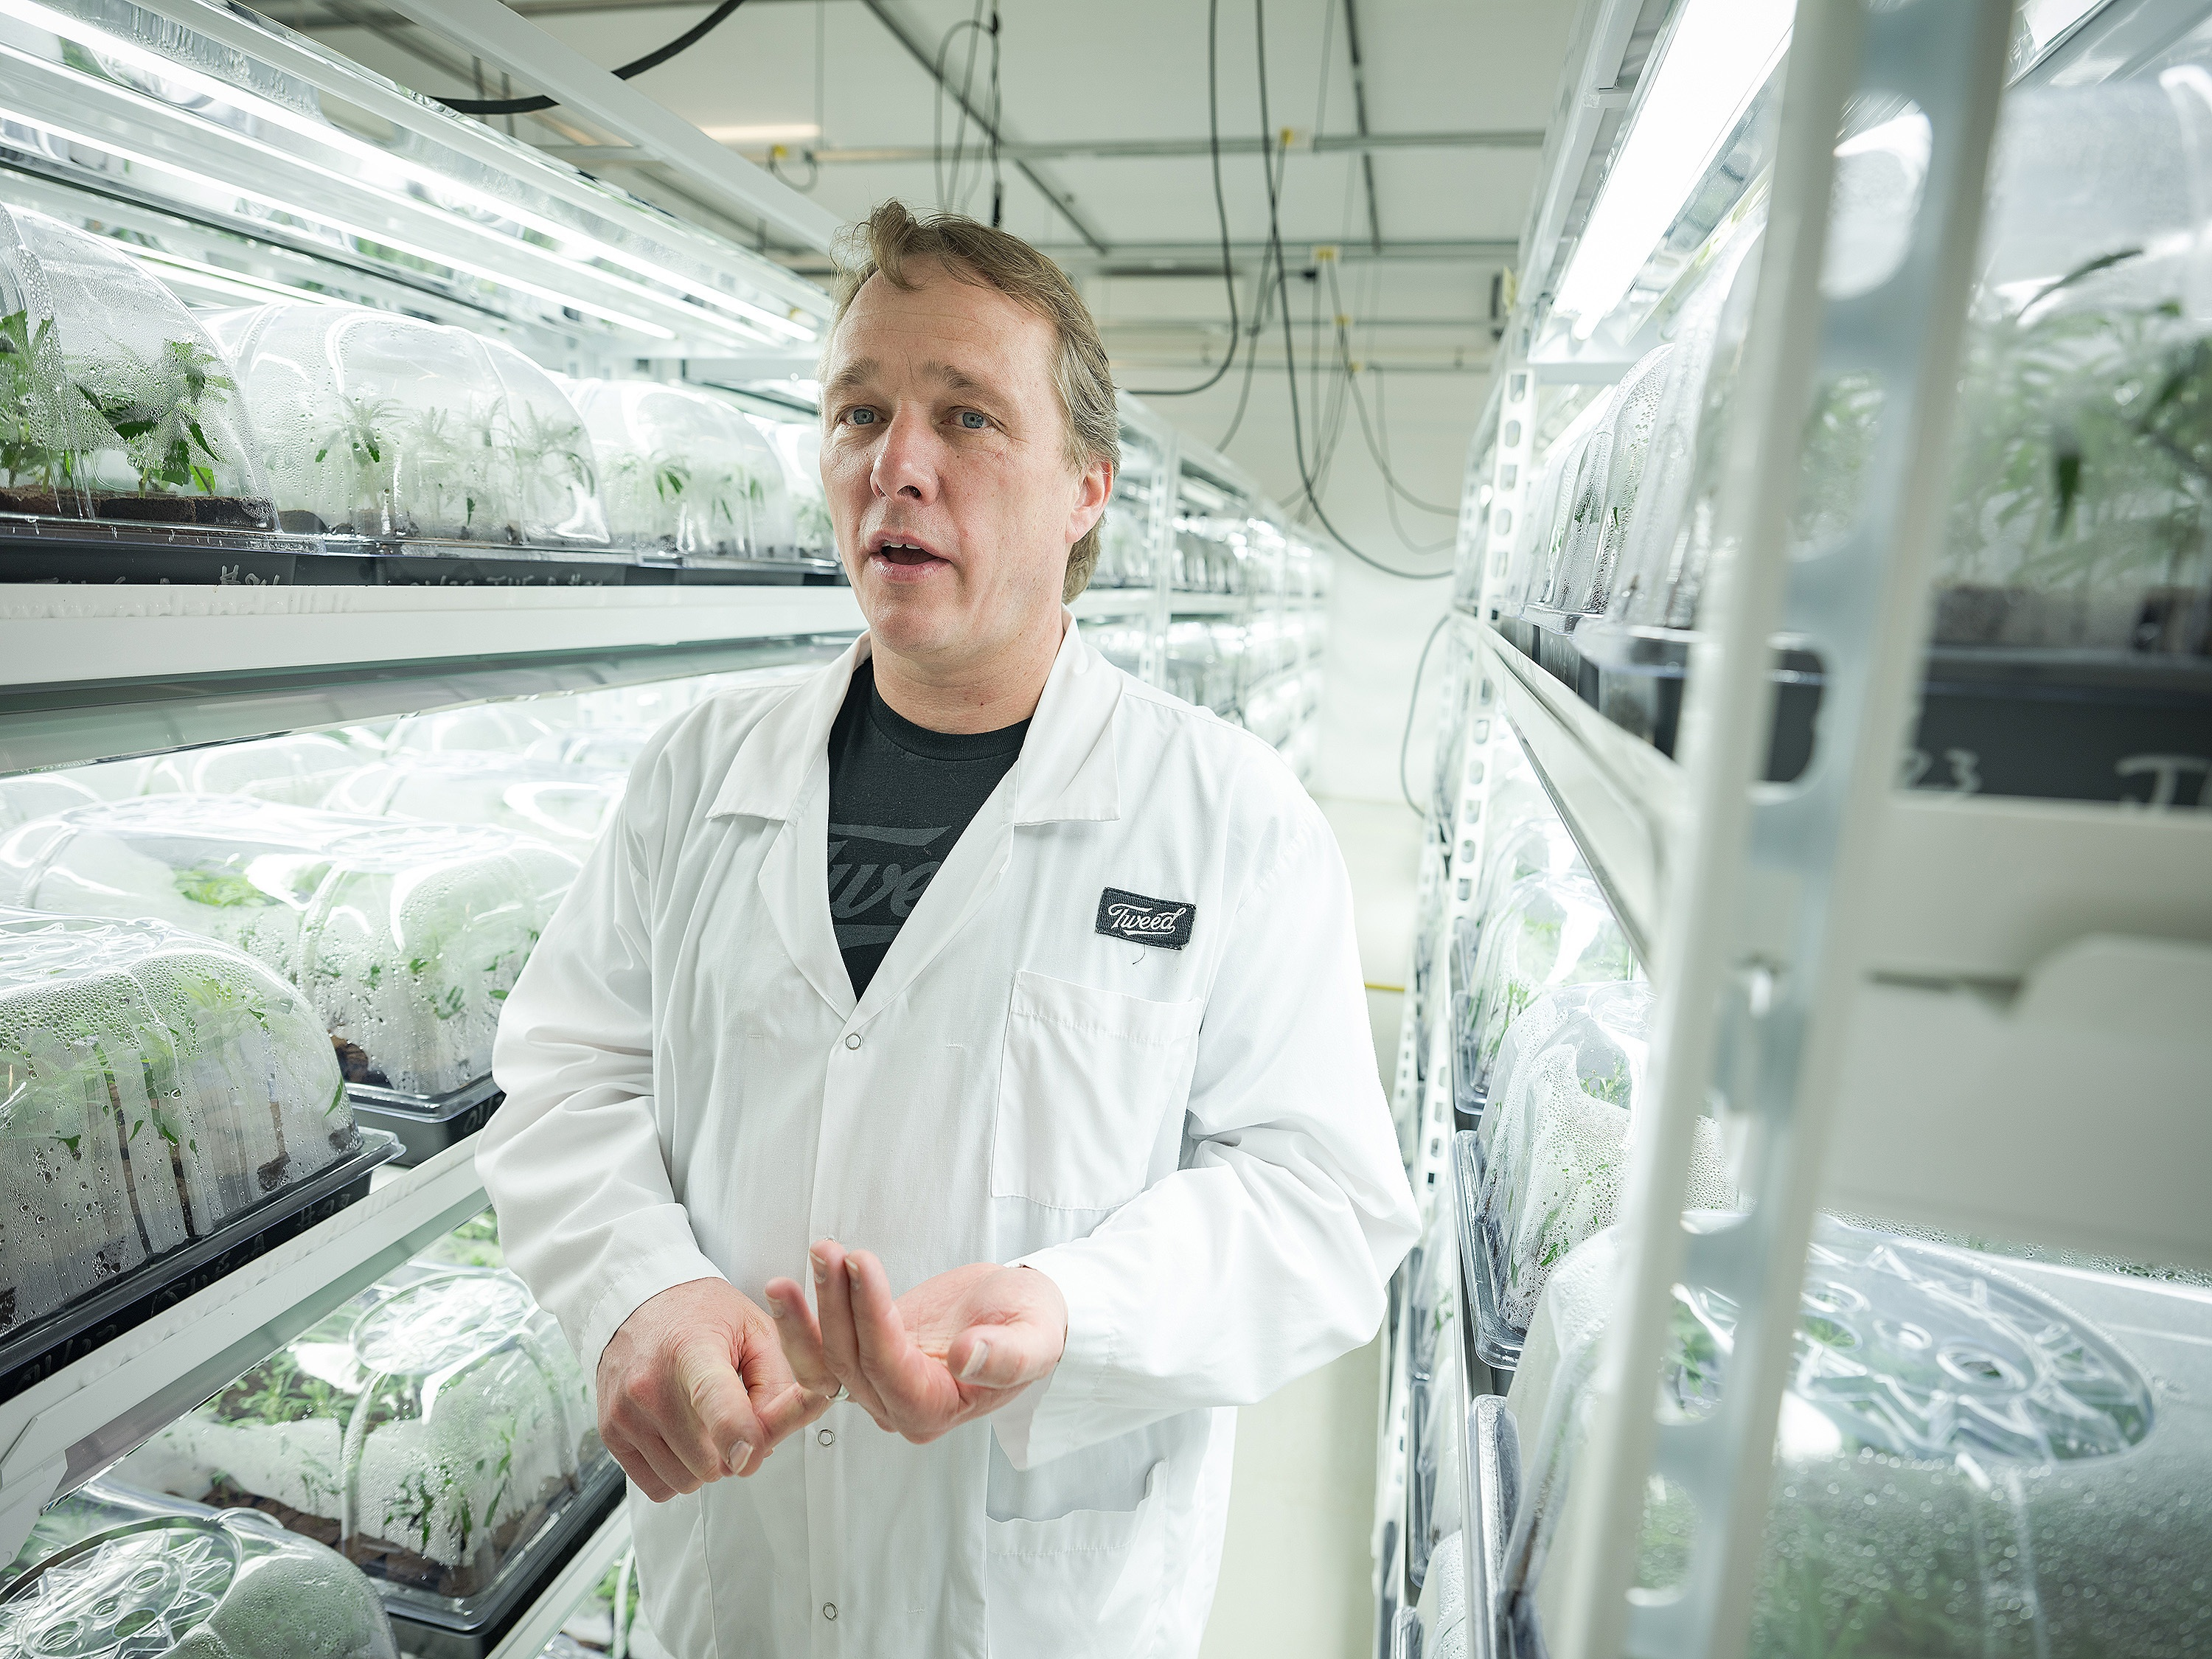 Bruce Linton is the CEO of Canopy Growth, which operates out of the former Hersey chocolate factory in Smiths Falls, Ont. (Evan Mitsui/CBC)